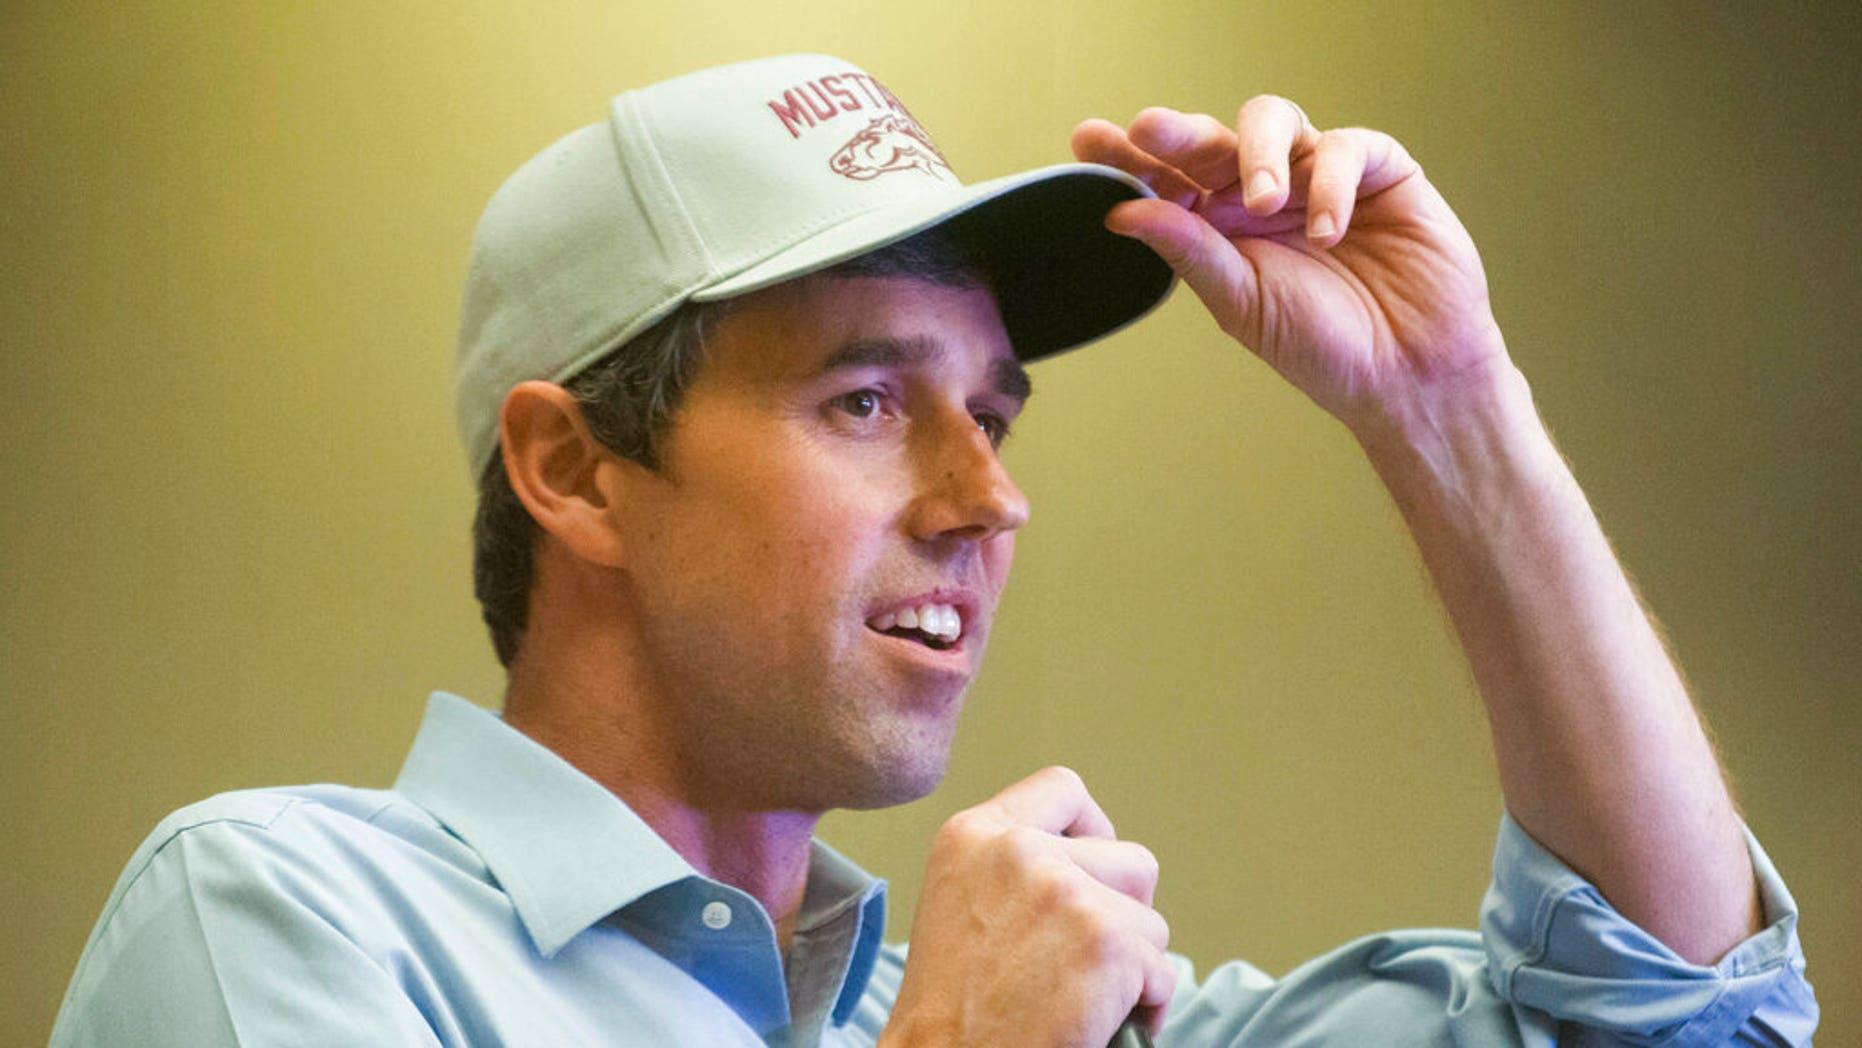 Beto O'Rourke underpaid taxes twice, report says